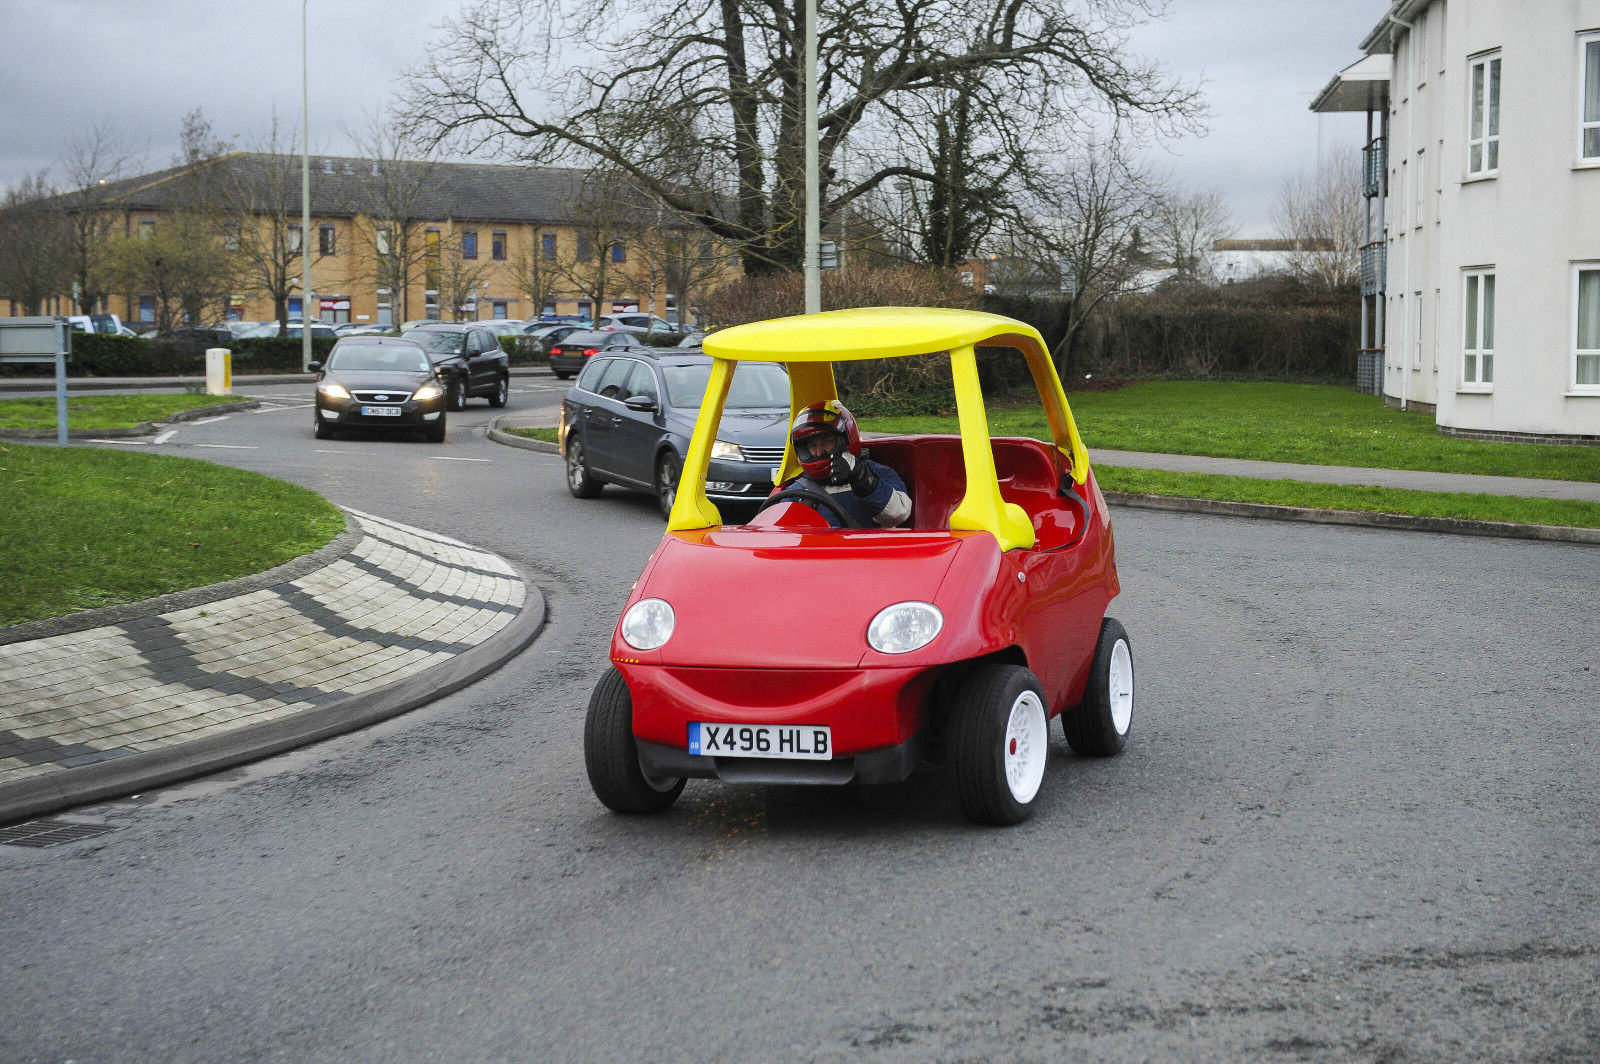 A Roadworthy Version Of Your Favourite Childhood Toy Car Is Now For Sale UNILAD 5799551